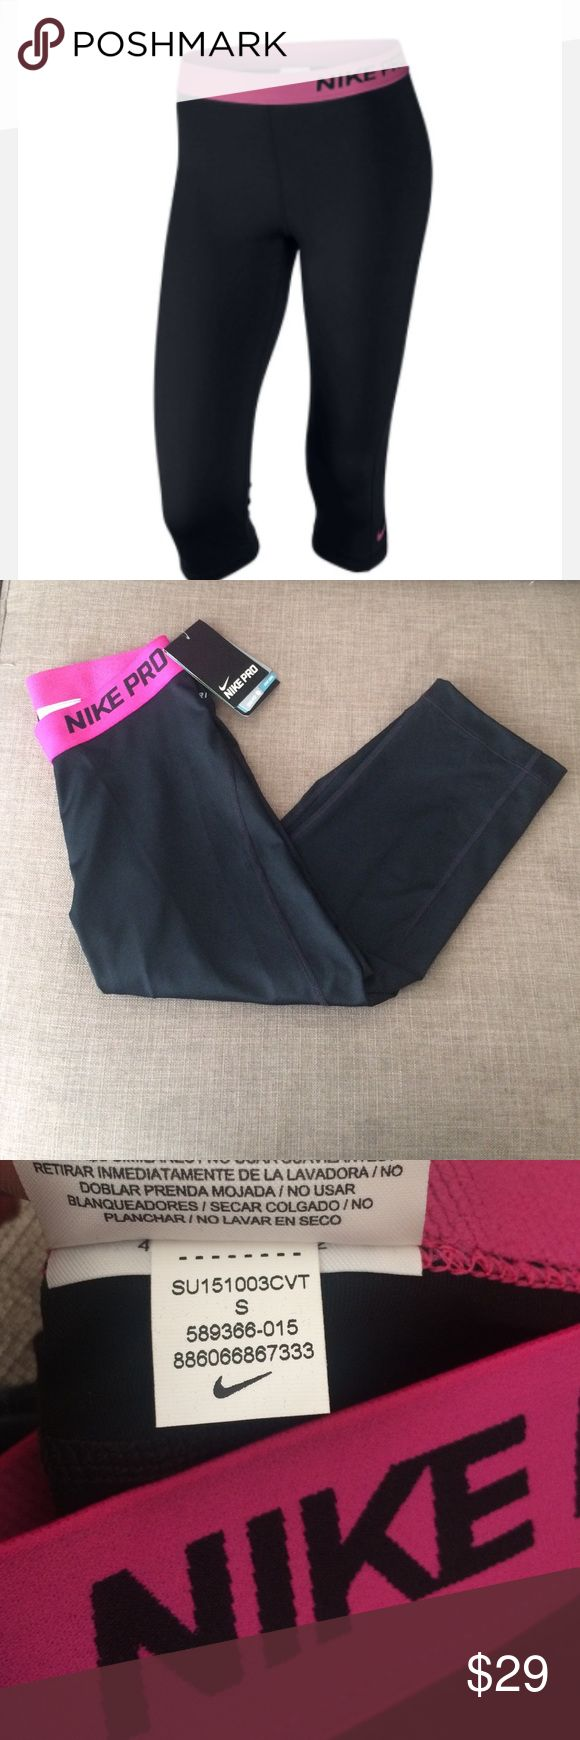 Nike pro women's training capris size small New with tags. Great for working out or everyday wear! Size small Nike Pants Leggings